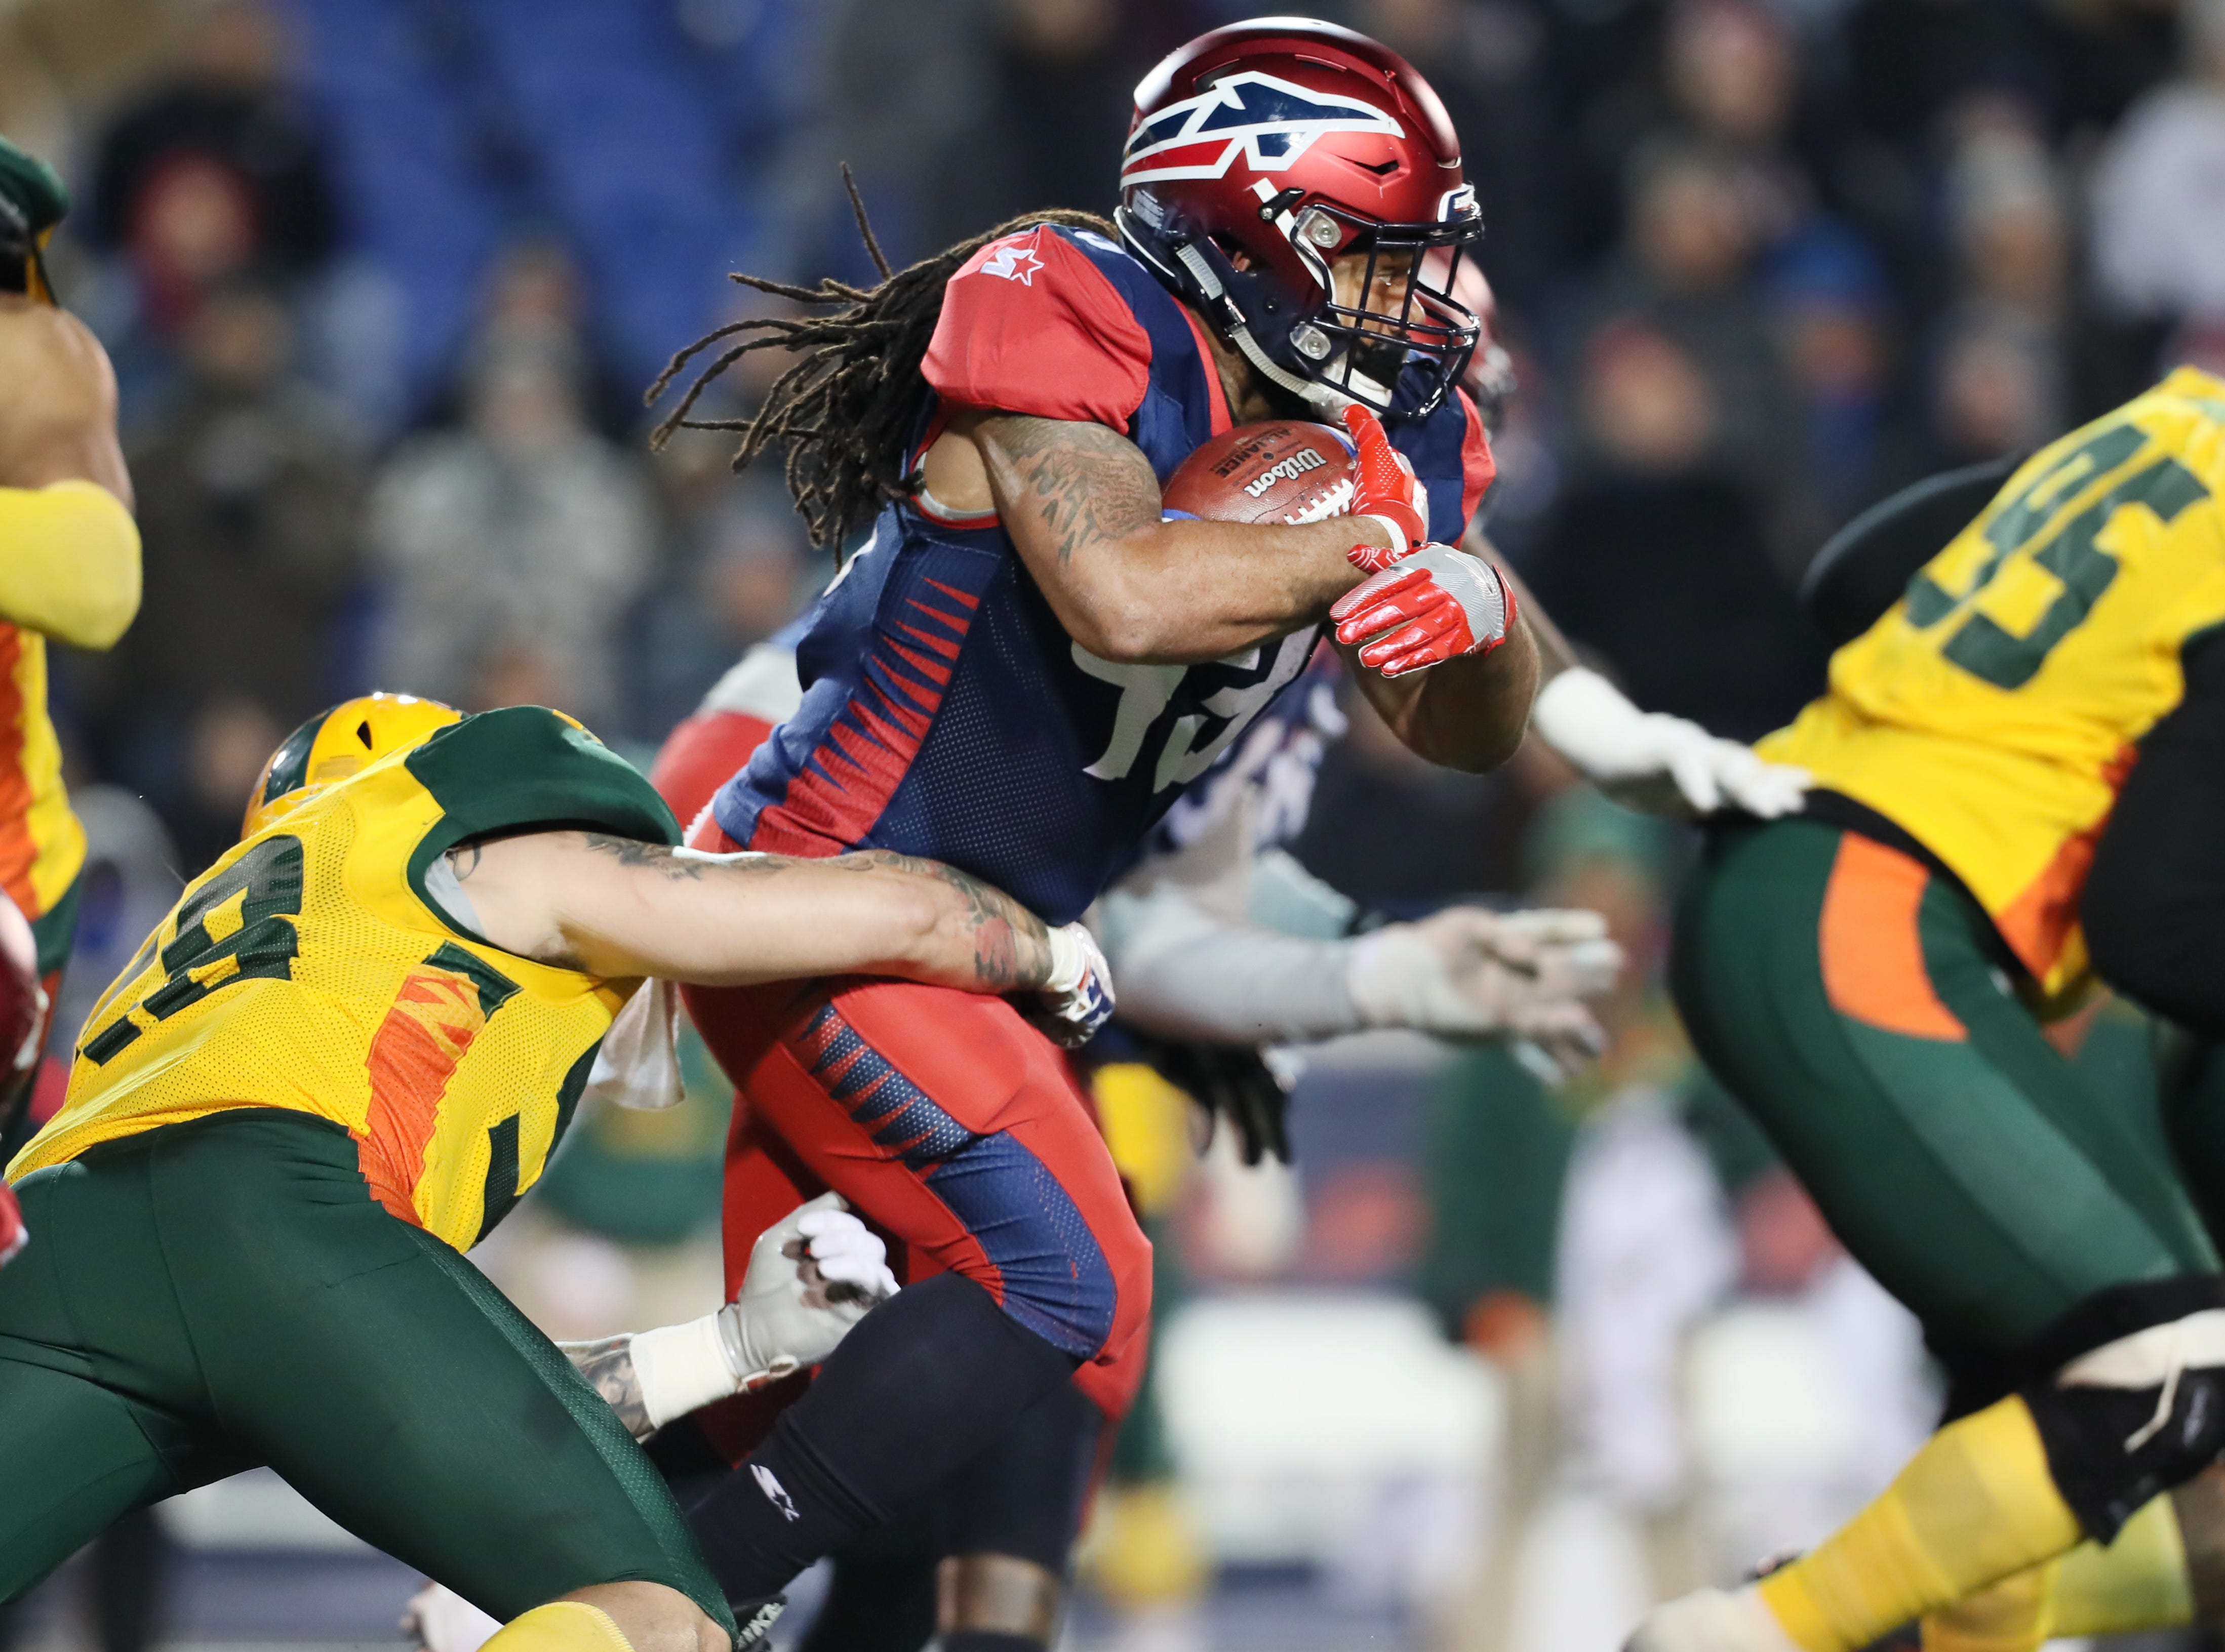 Memphis Express running back Terrence Magee breaks away from Arizona Hotshots defender Terrence Magee during their game at the Liberty Bowl on Saturday, Feb. 16, 2019.